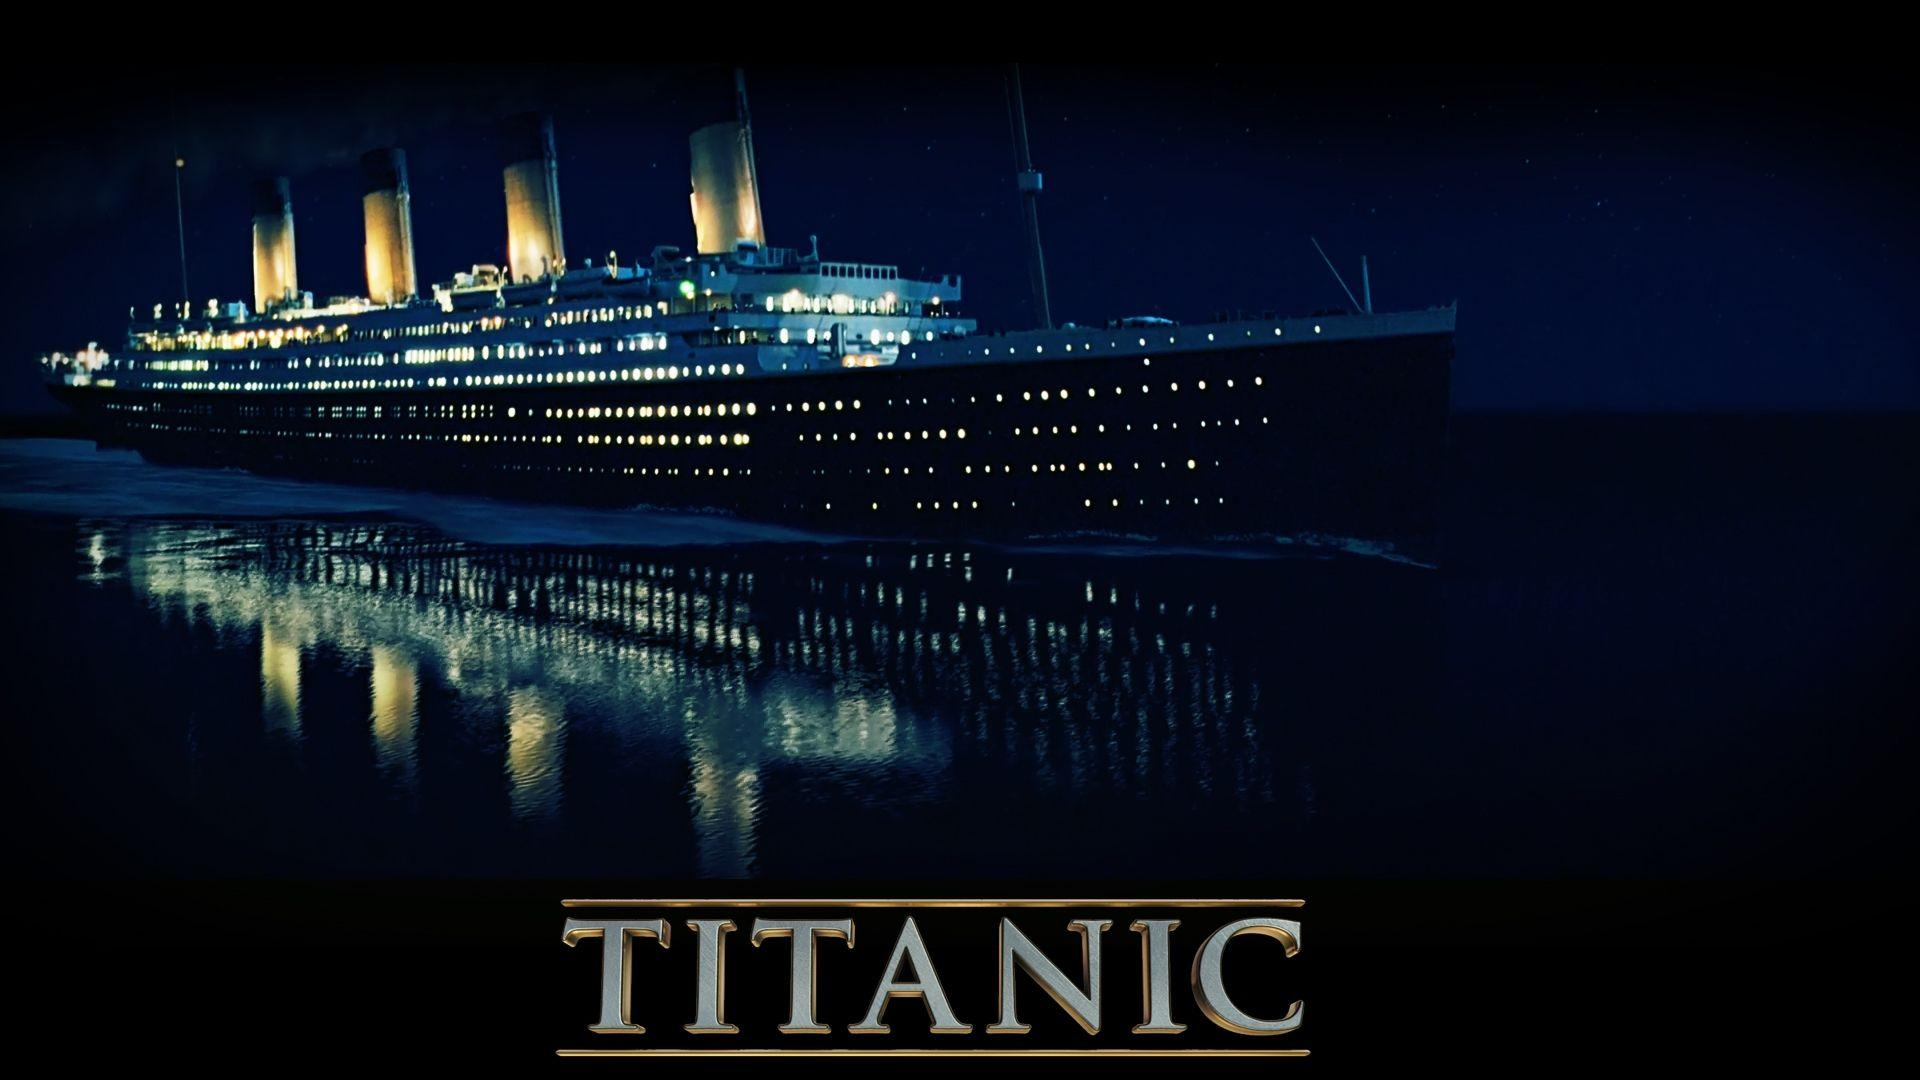 Full HD 1080p Titanic Wallpapers HD, Desktop Backgrounds 1920x1080 ...